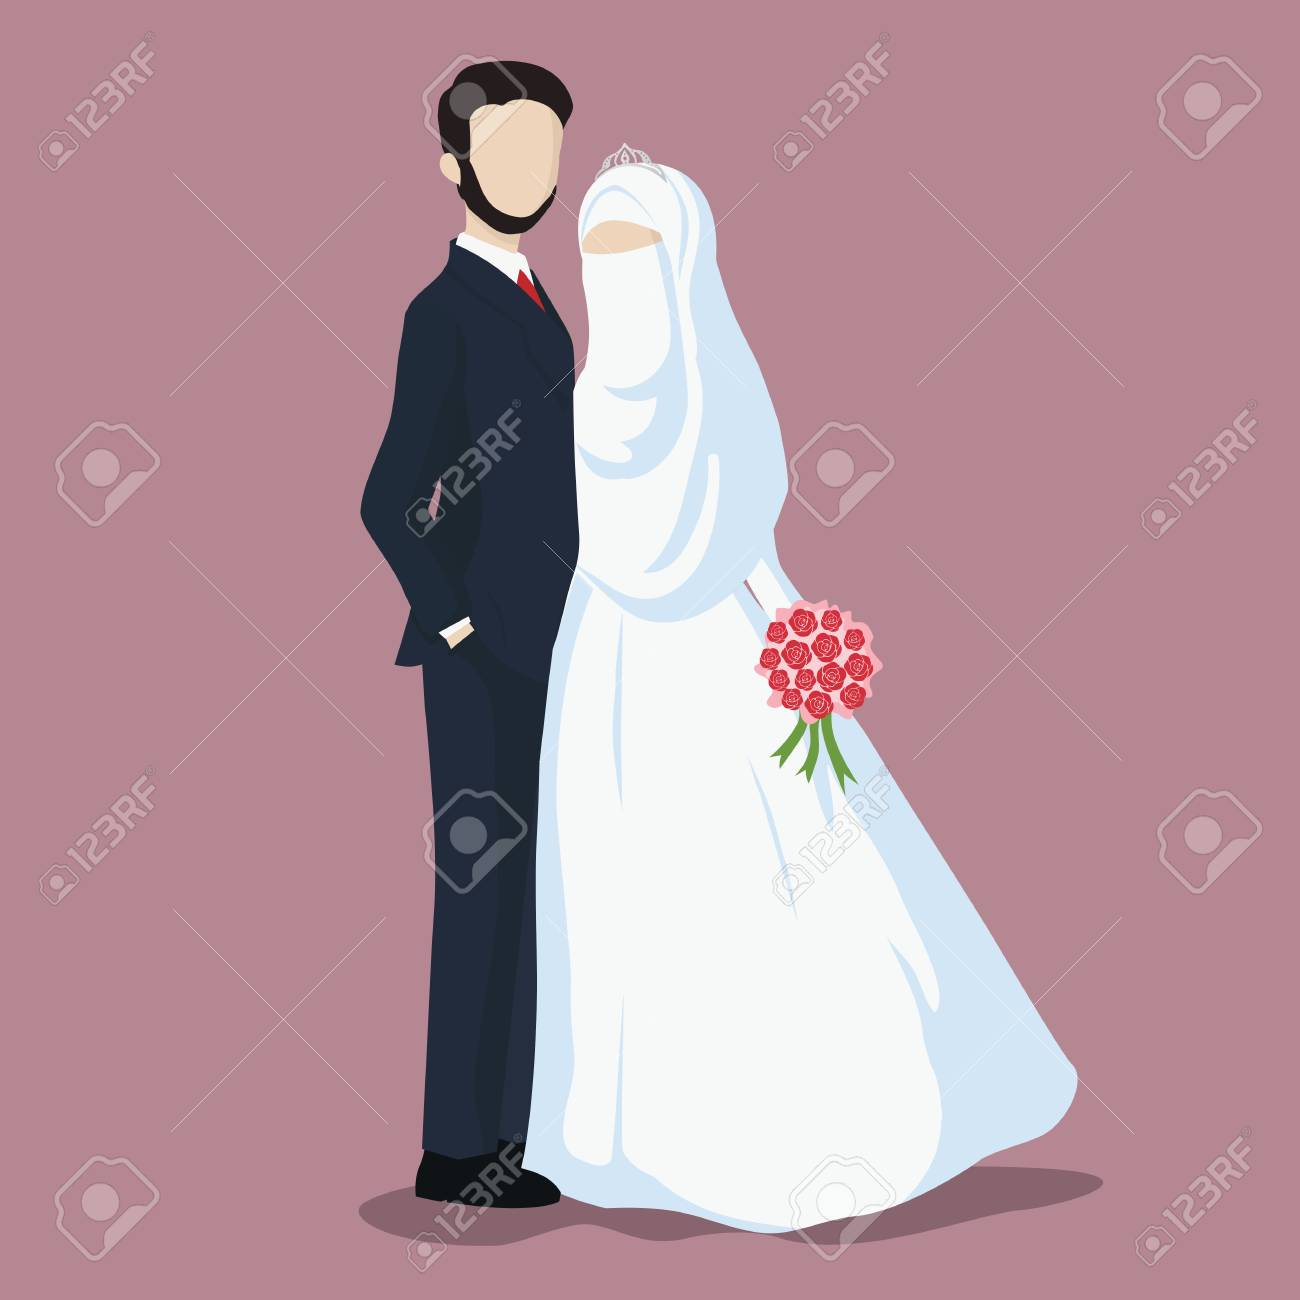 Illustration Of Bride And Groom Wedding Couple Cartoon Vector Royalty Free Cliparts Vectors And Stock Illustration Image 109689108